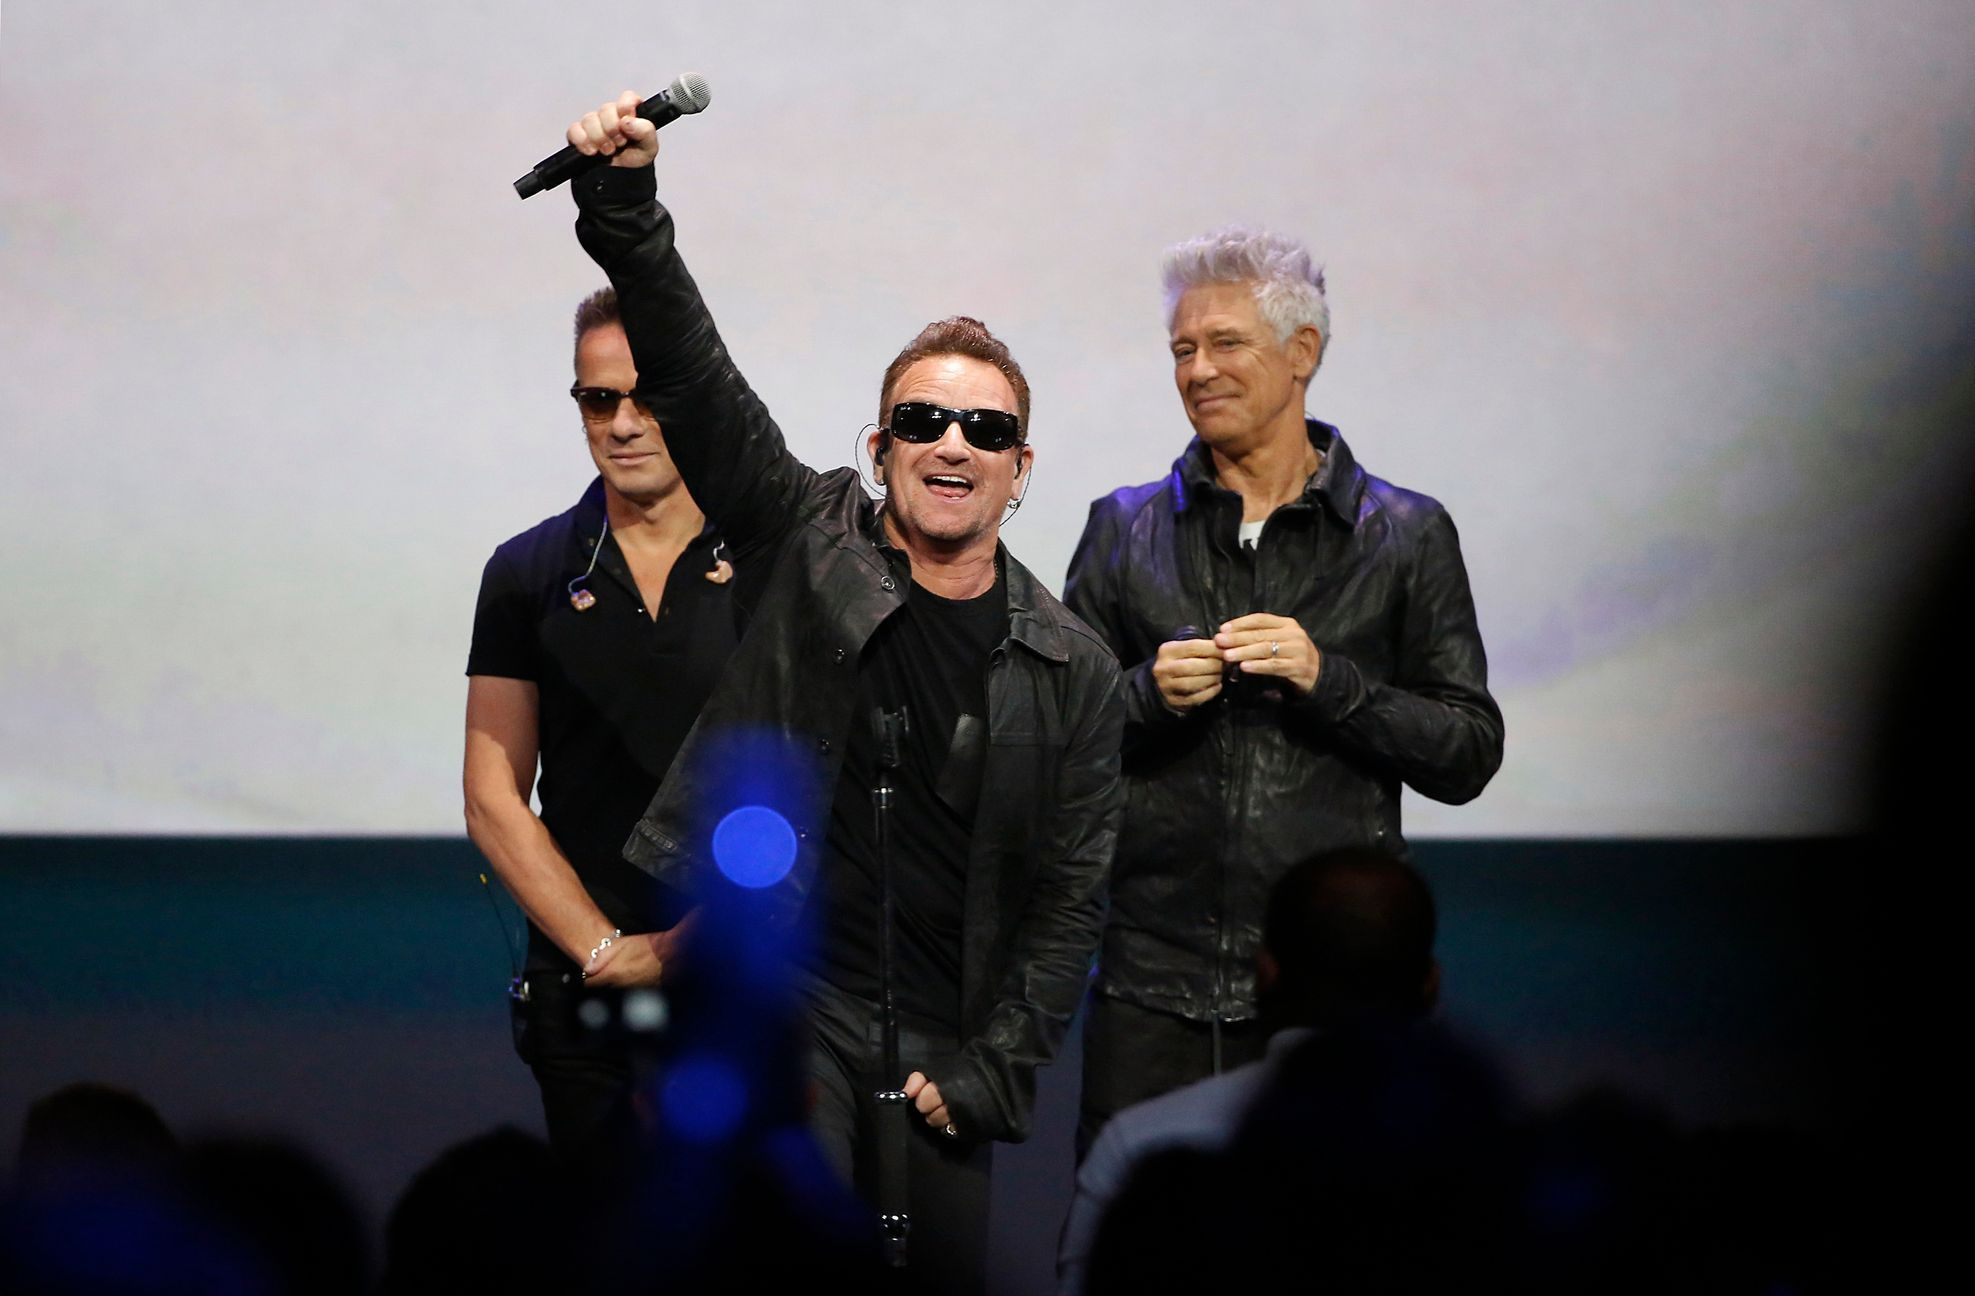 Bono of Irish rock band U2 gestures to the audience after performing at an Apple event at the Flint Center in Cupertino